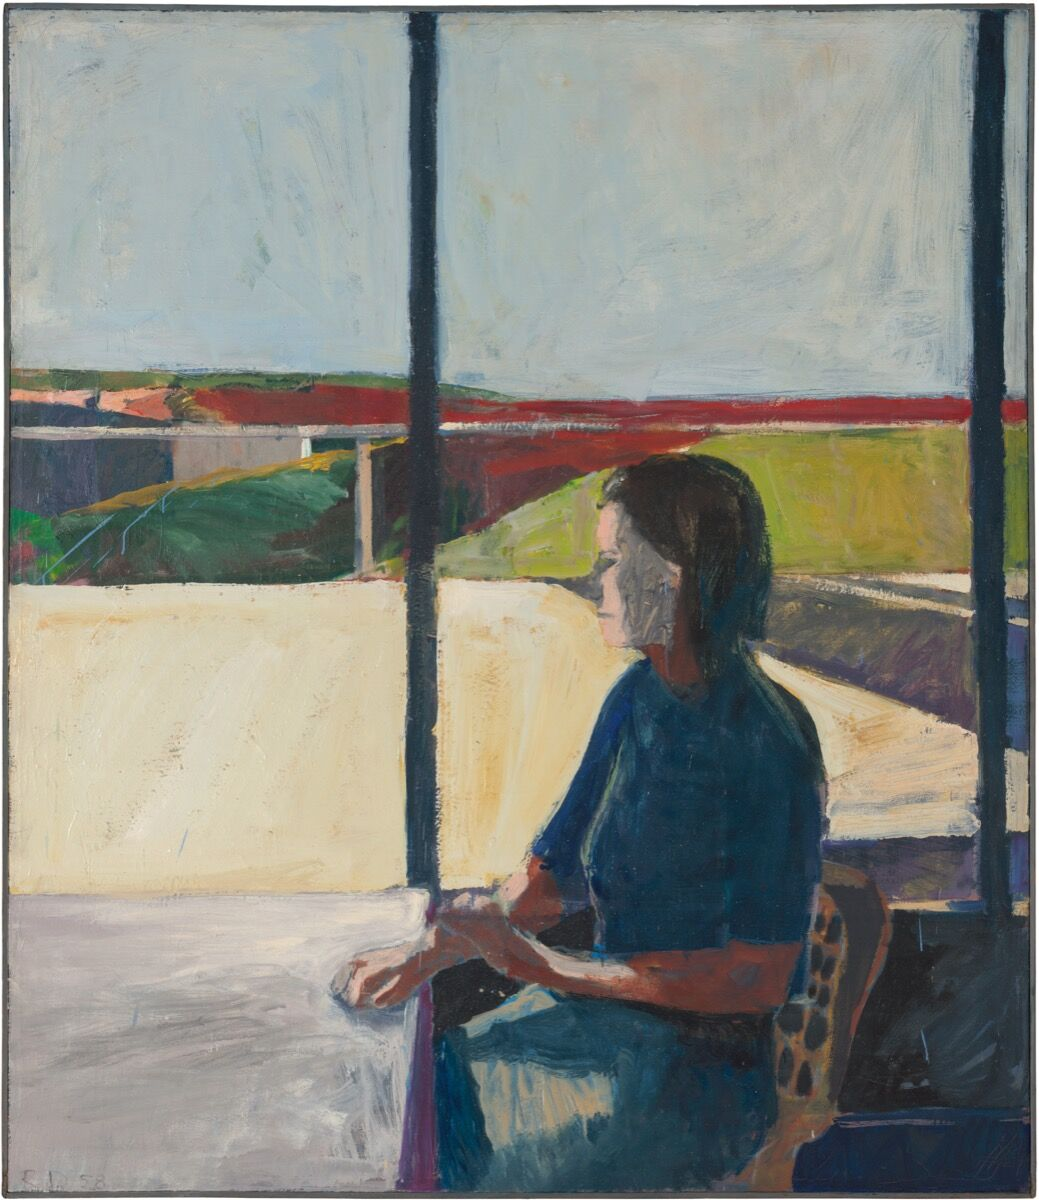 Richard Diebenkorn, Woman in Profile, 1958. © The Richard Diebenkorn Foundation. Photo by Richard Grant. Courtesy of Richard Grant, the Richard Diebenkorn Foundation, and the San Francisco Museum of Art.